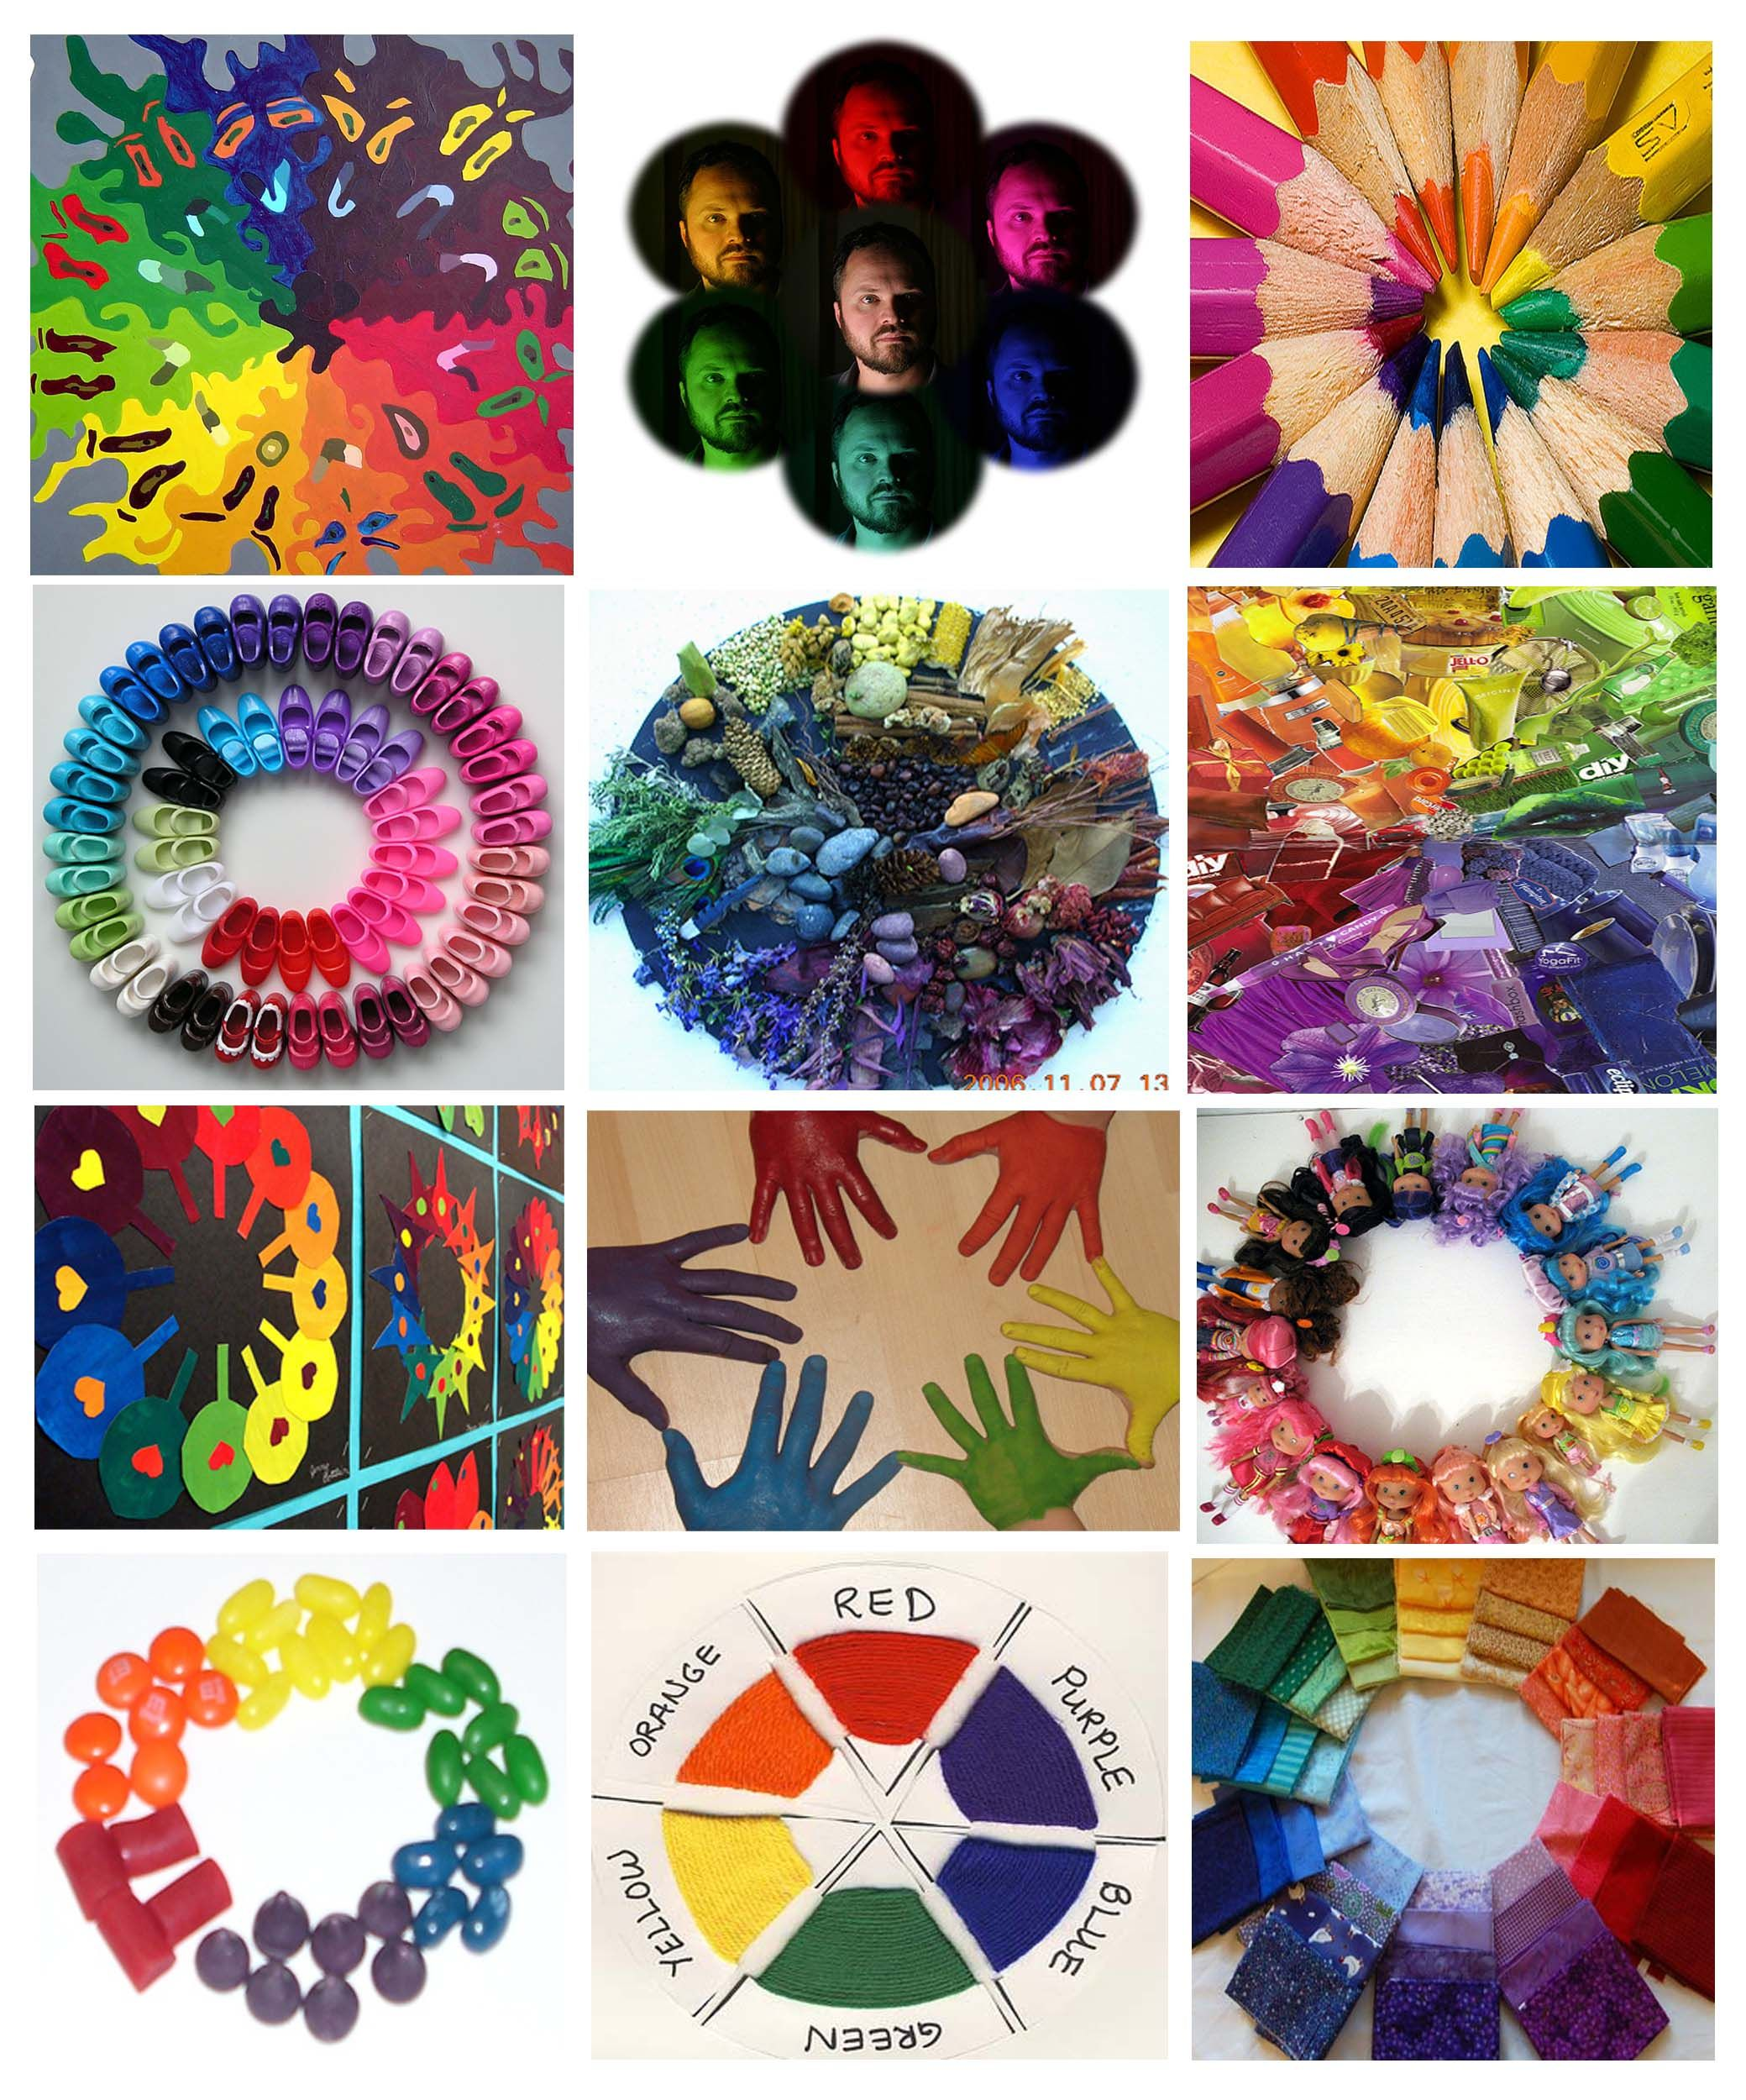 Creative Color Wheels Cut Out Images For Collage Or Have Students